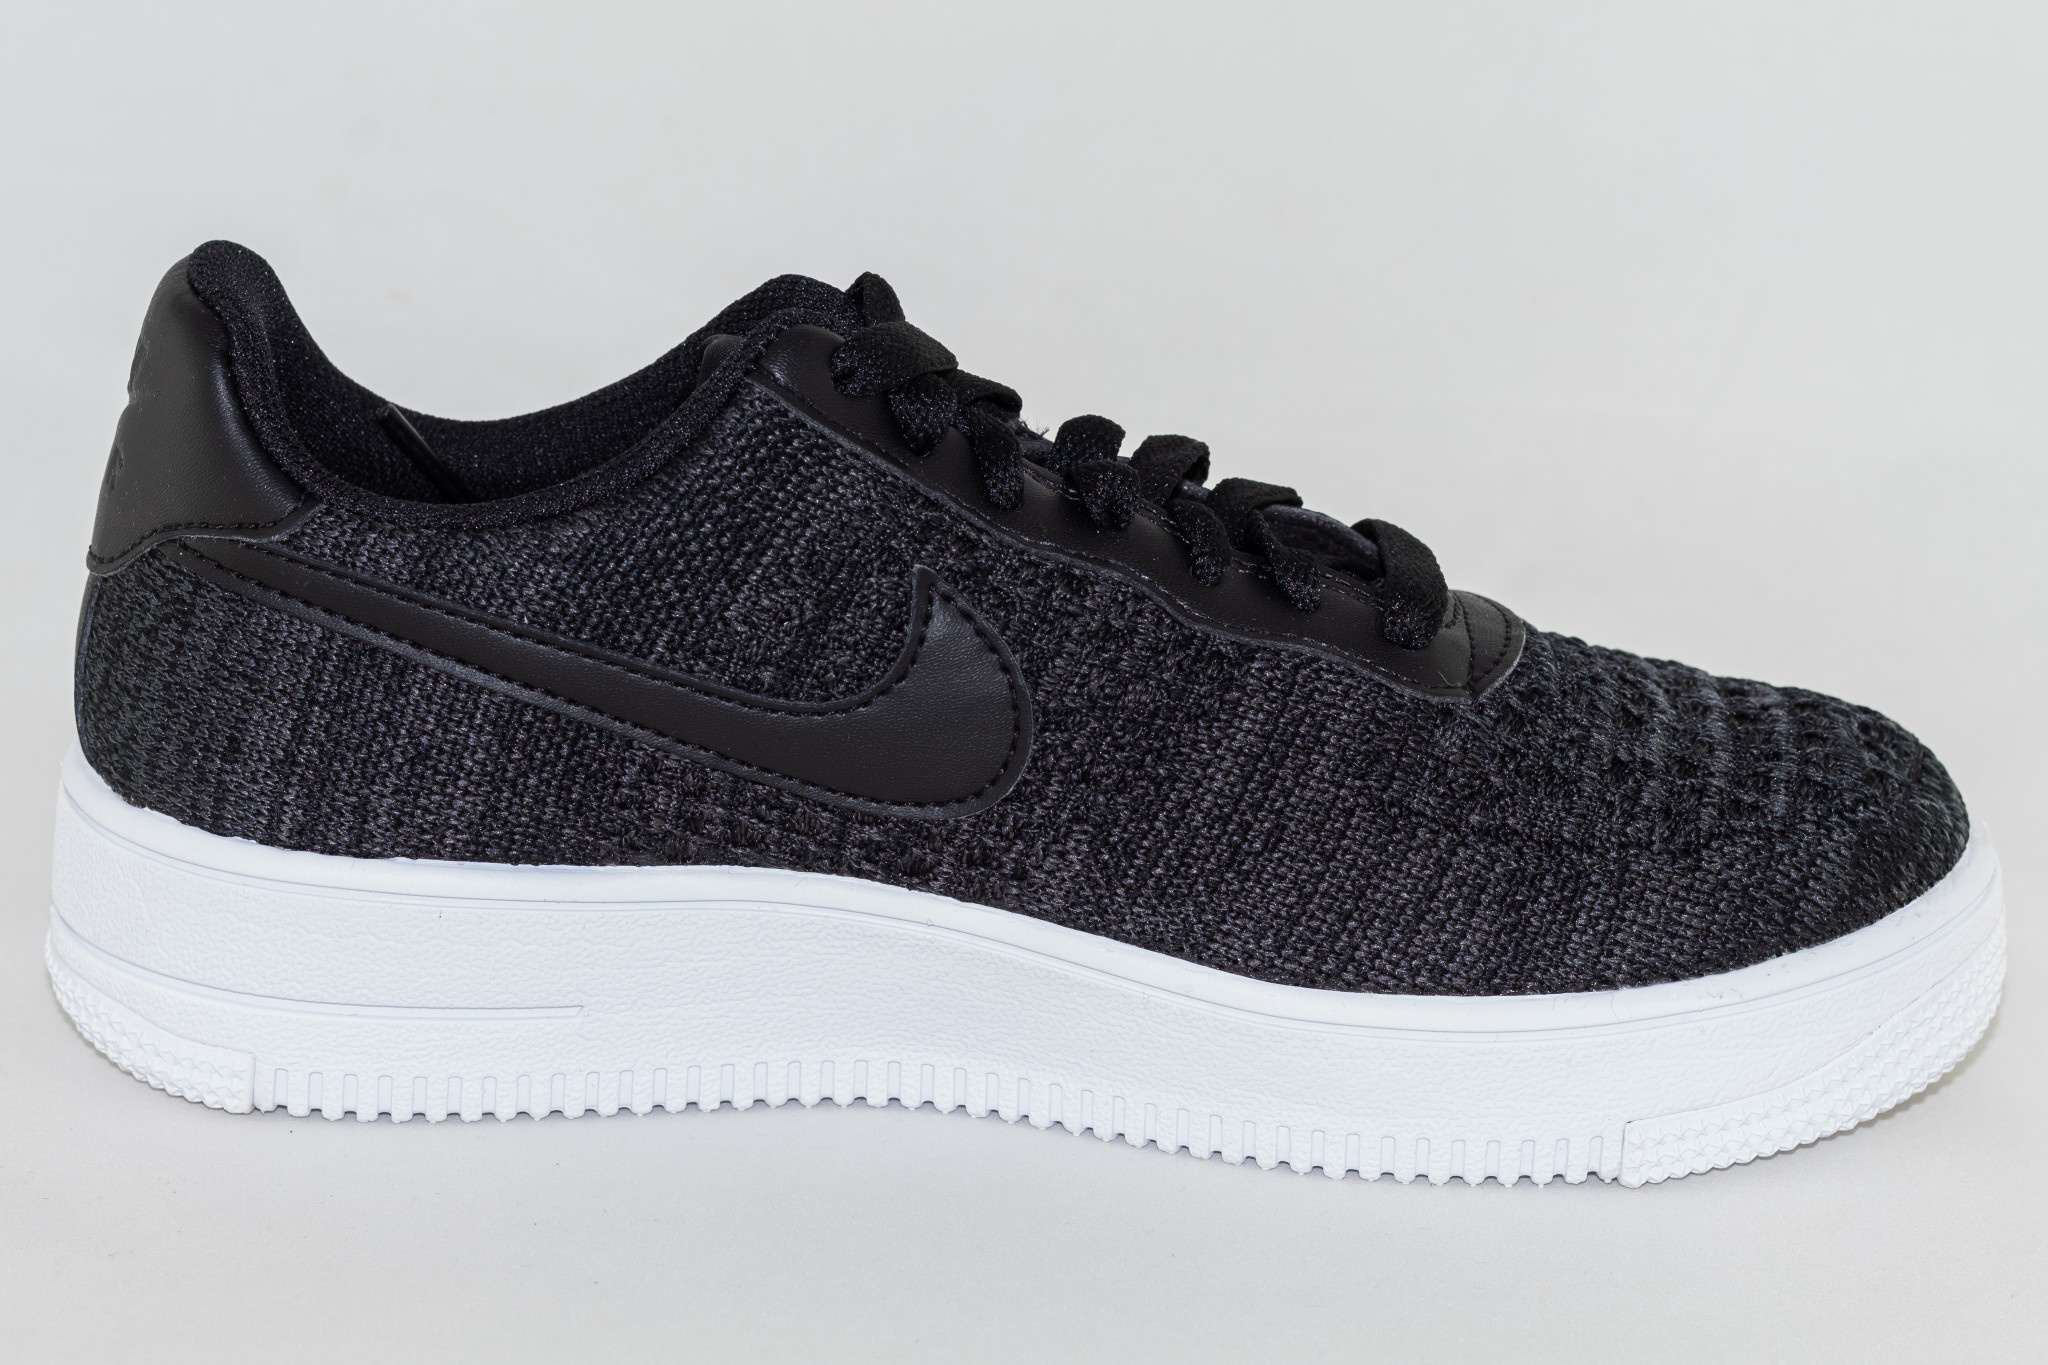 NIKE AIR FORCE 1 FLYKNIT 2.0 Black/ Anthracite- White